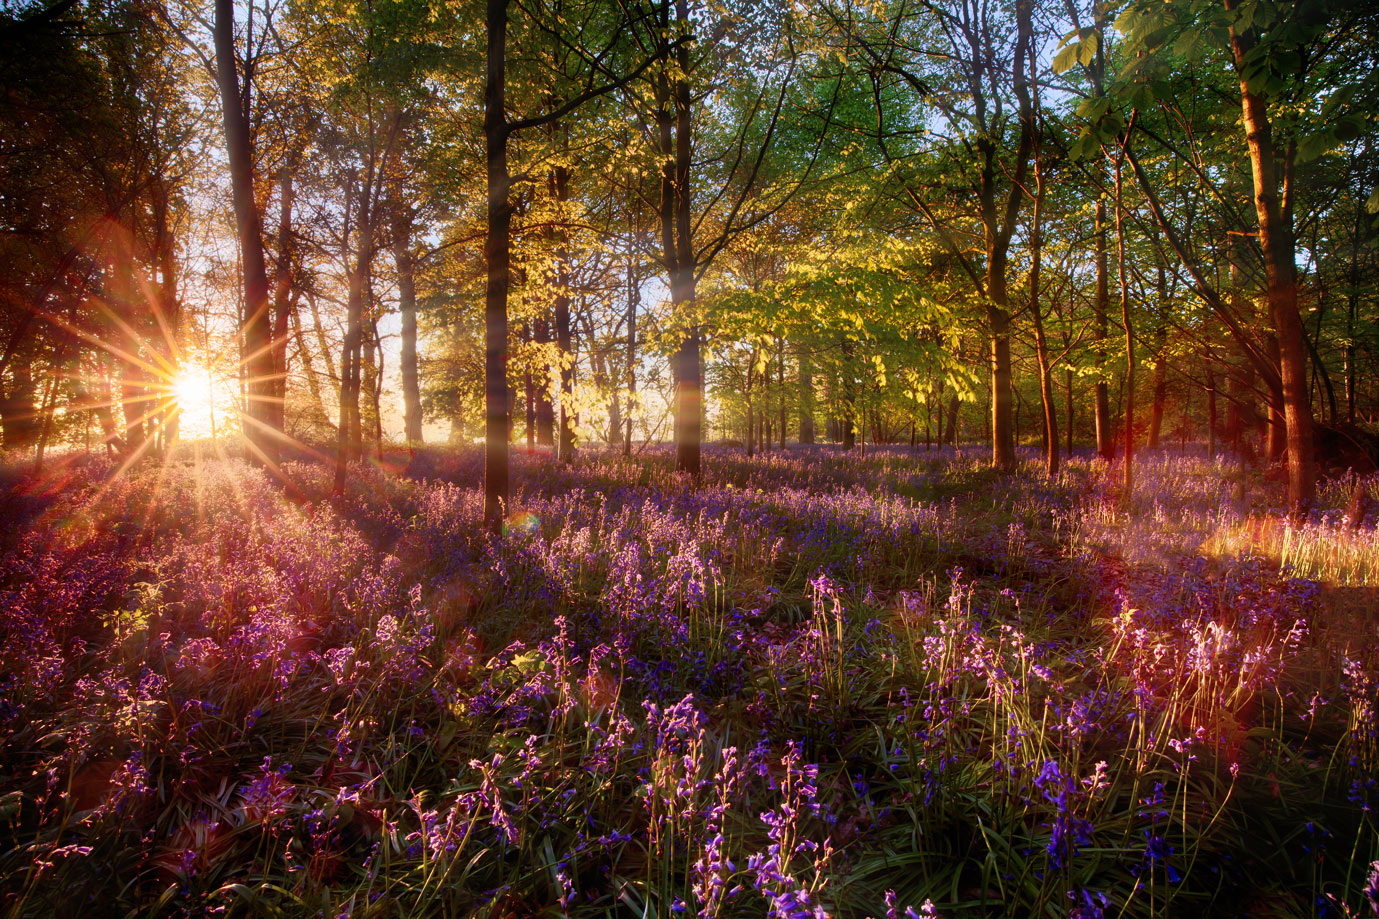 sun shining through forest landscape with abundant flowers springing from the ground